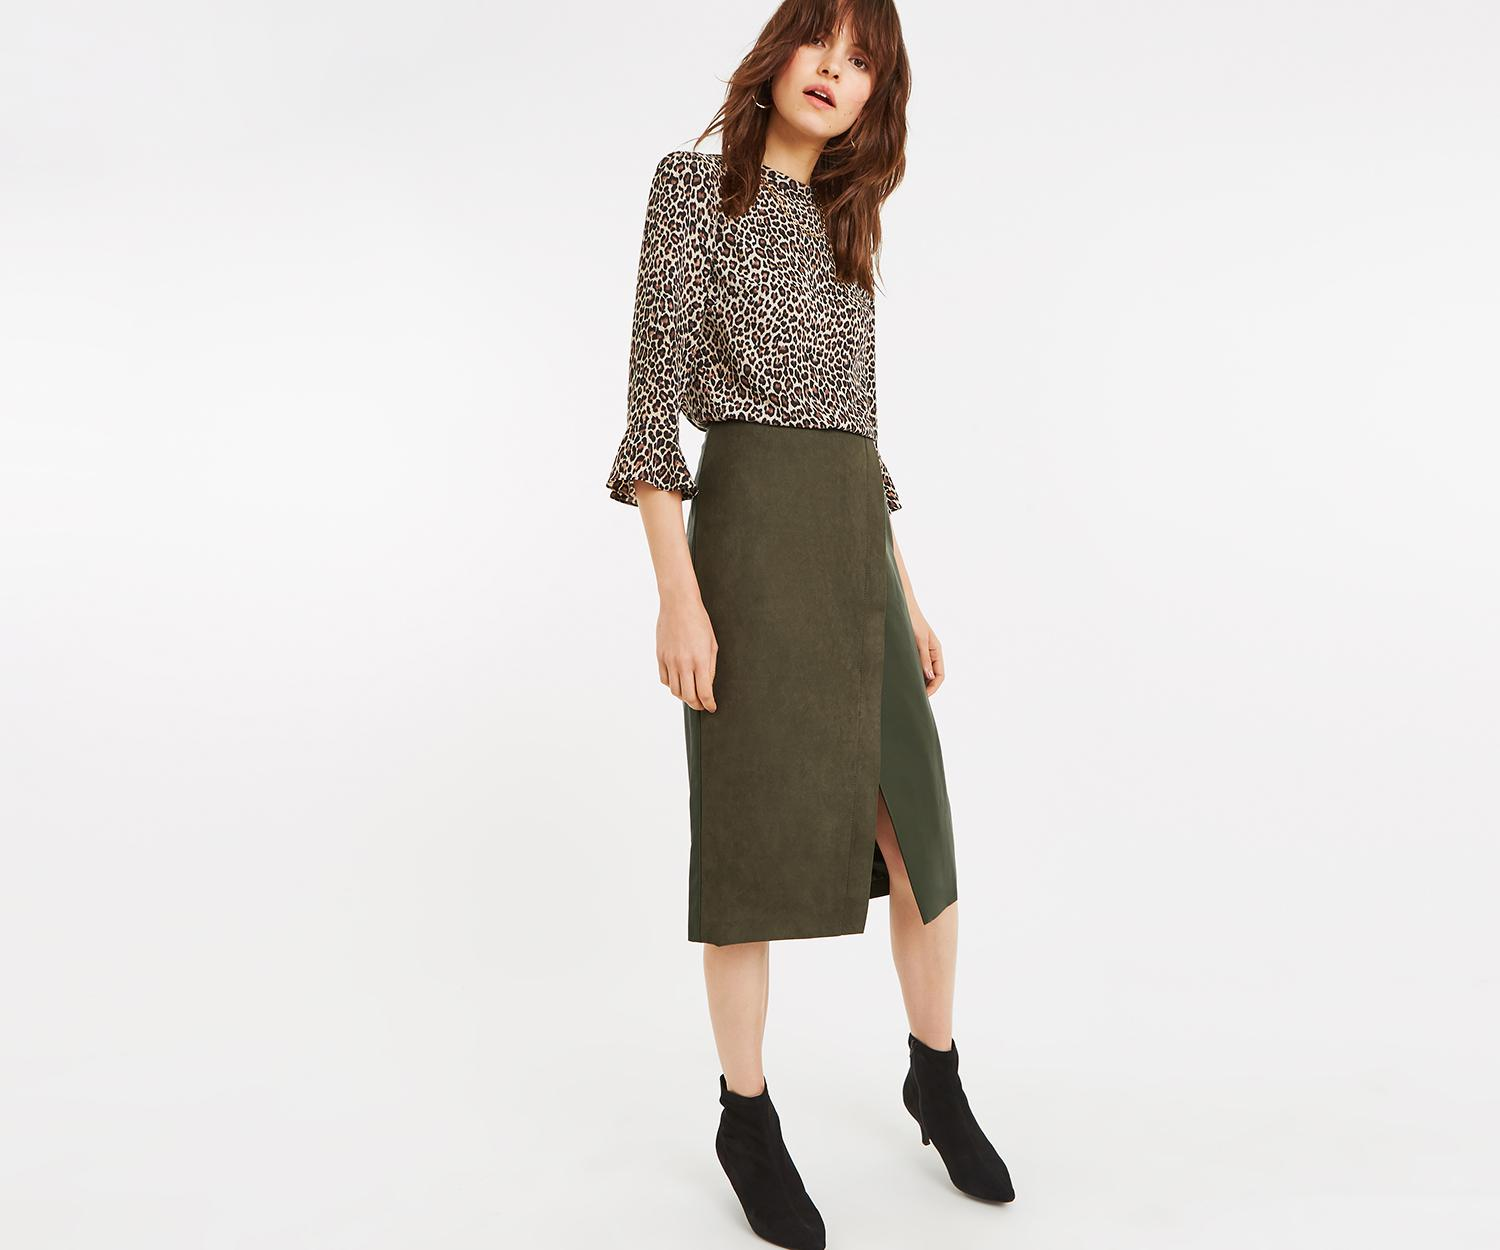 b718fc8d1b Lyst - Oasis Faux Suede Midi Skirt in Green